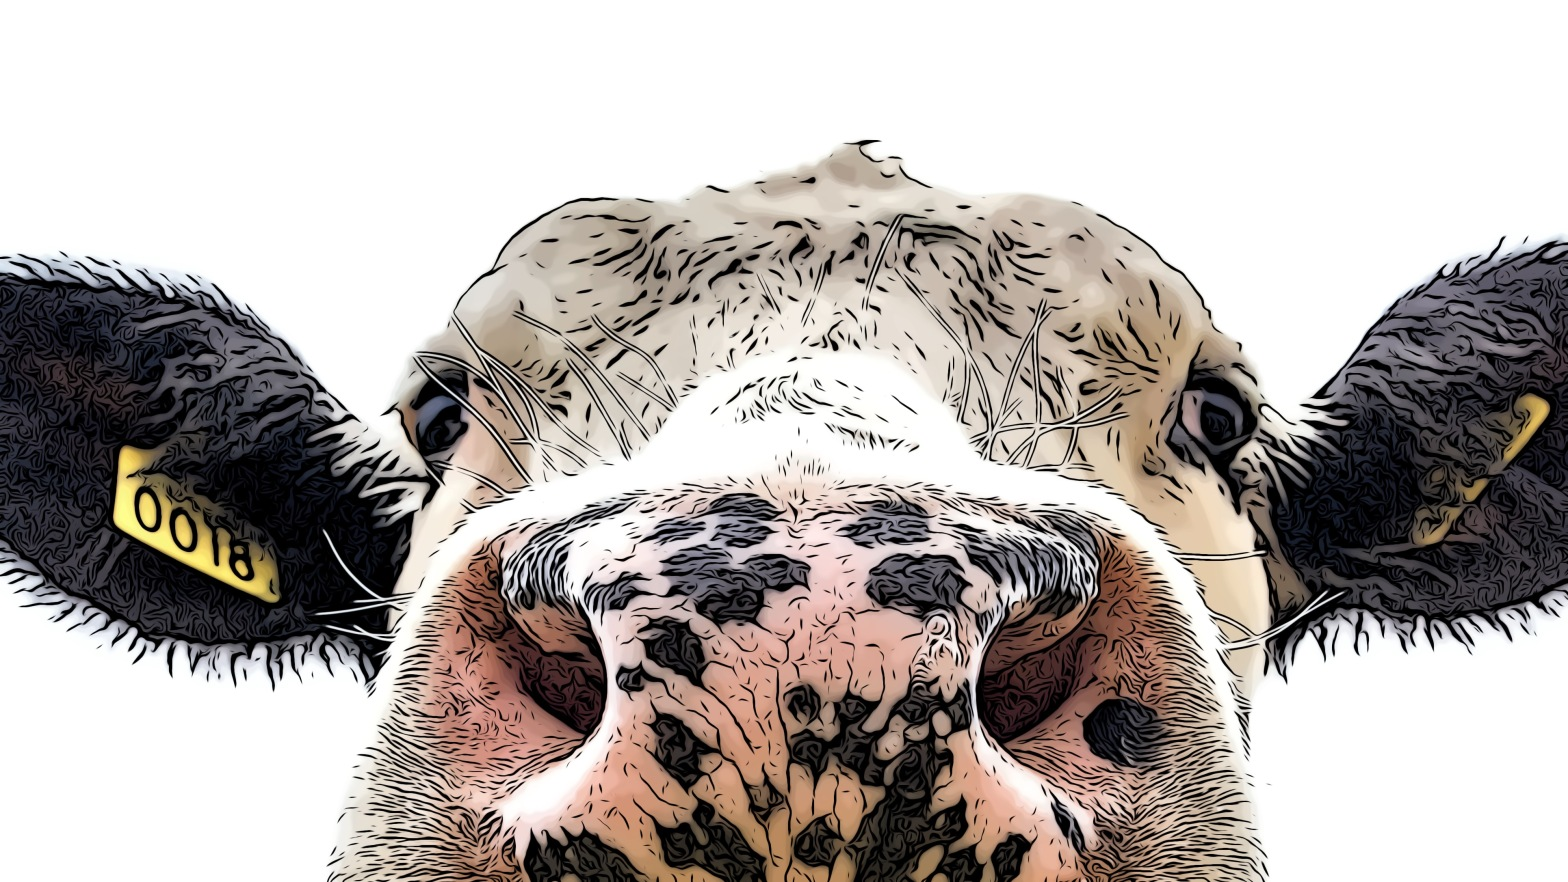 Cow header comic